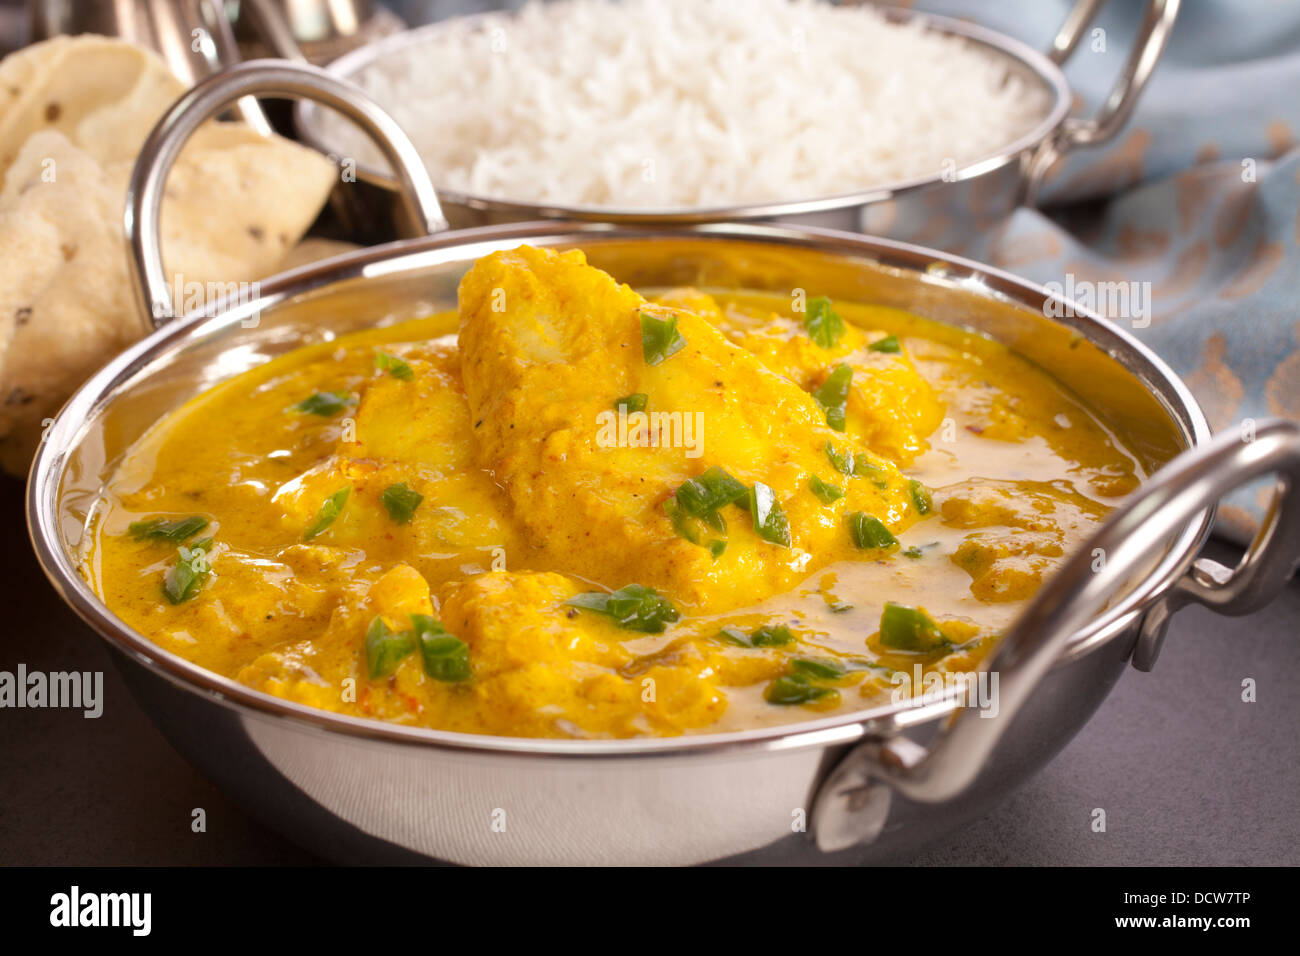 Fish Curry - a balti dish with fish curry in a yoghurt sauce with green chilli, served with poppadums. Fish is basa. - Stock Image